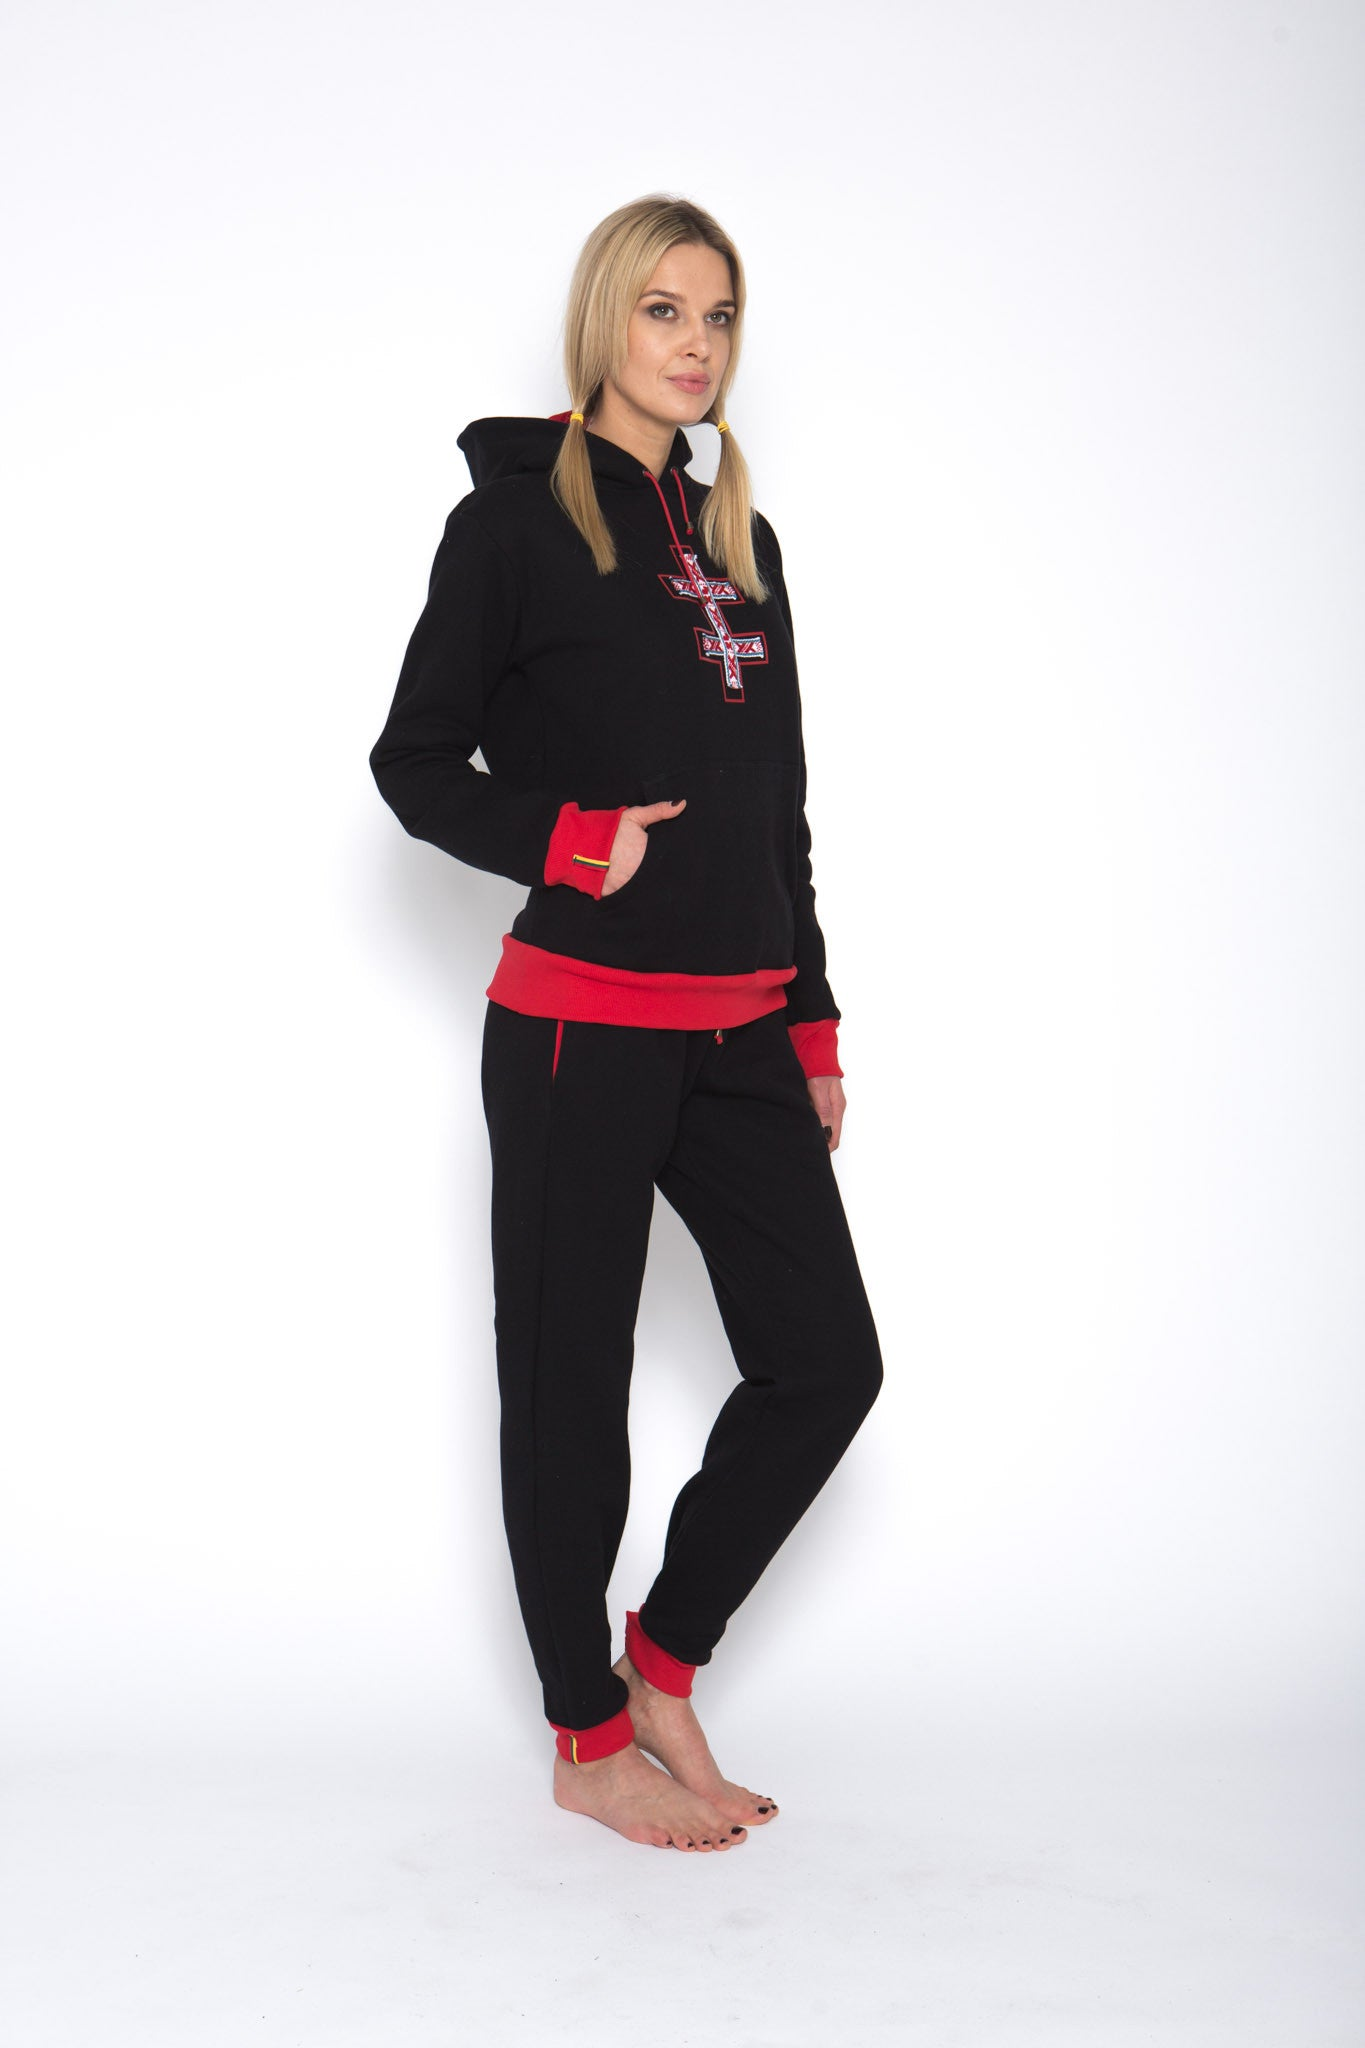 sofa killer women loungewear set